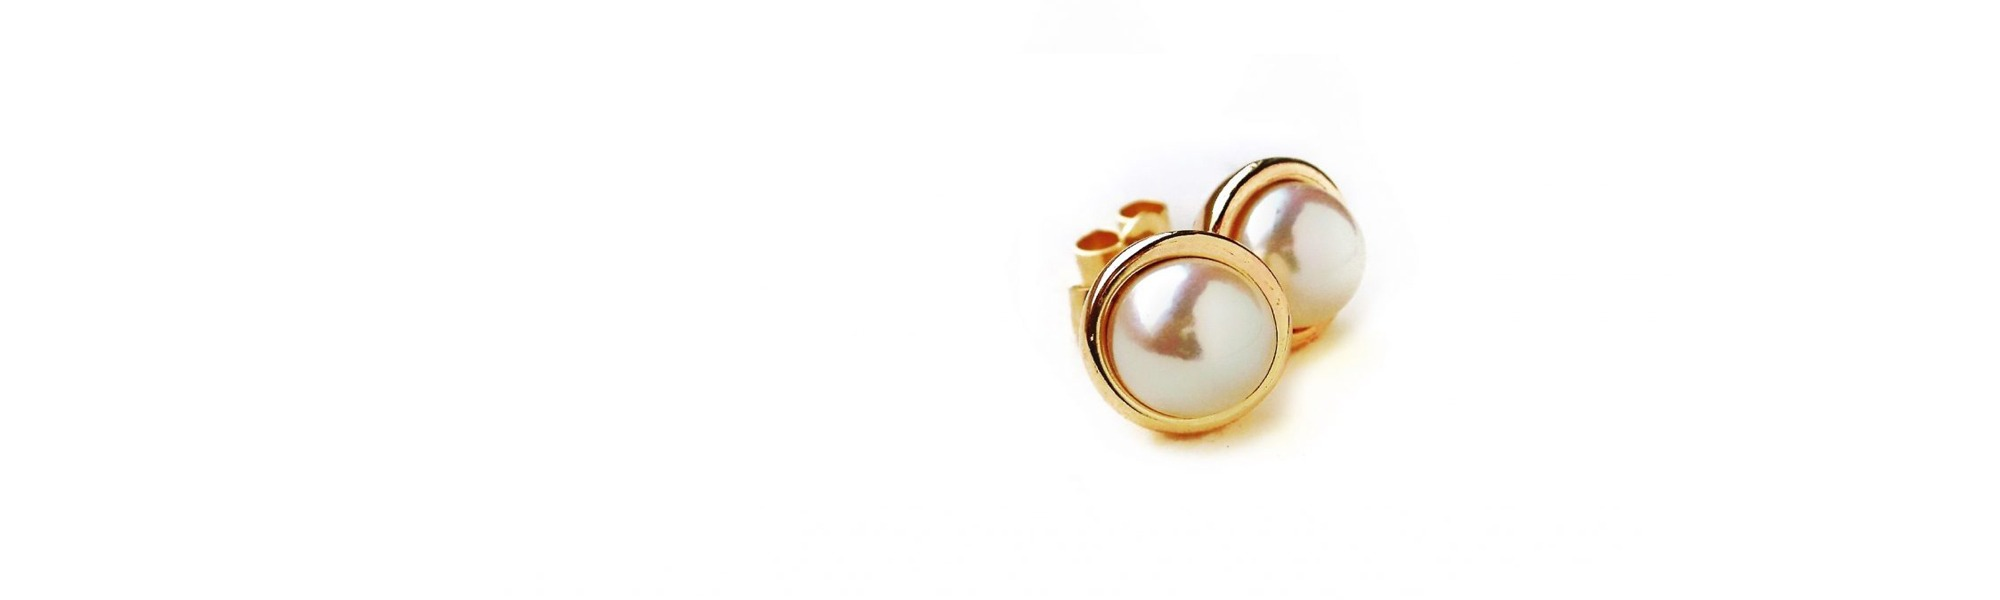 earrings, pearl, gold